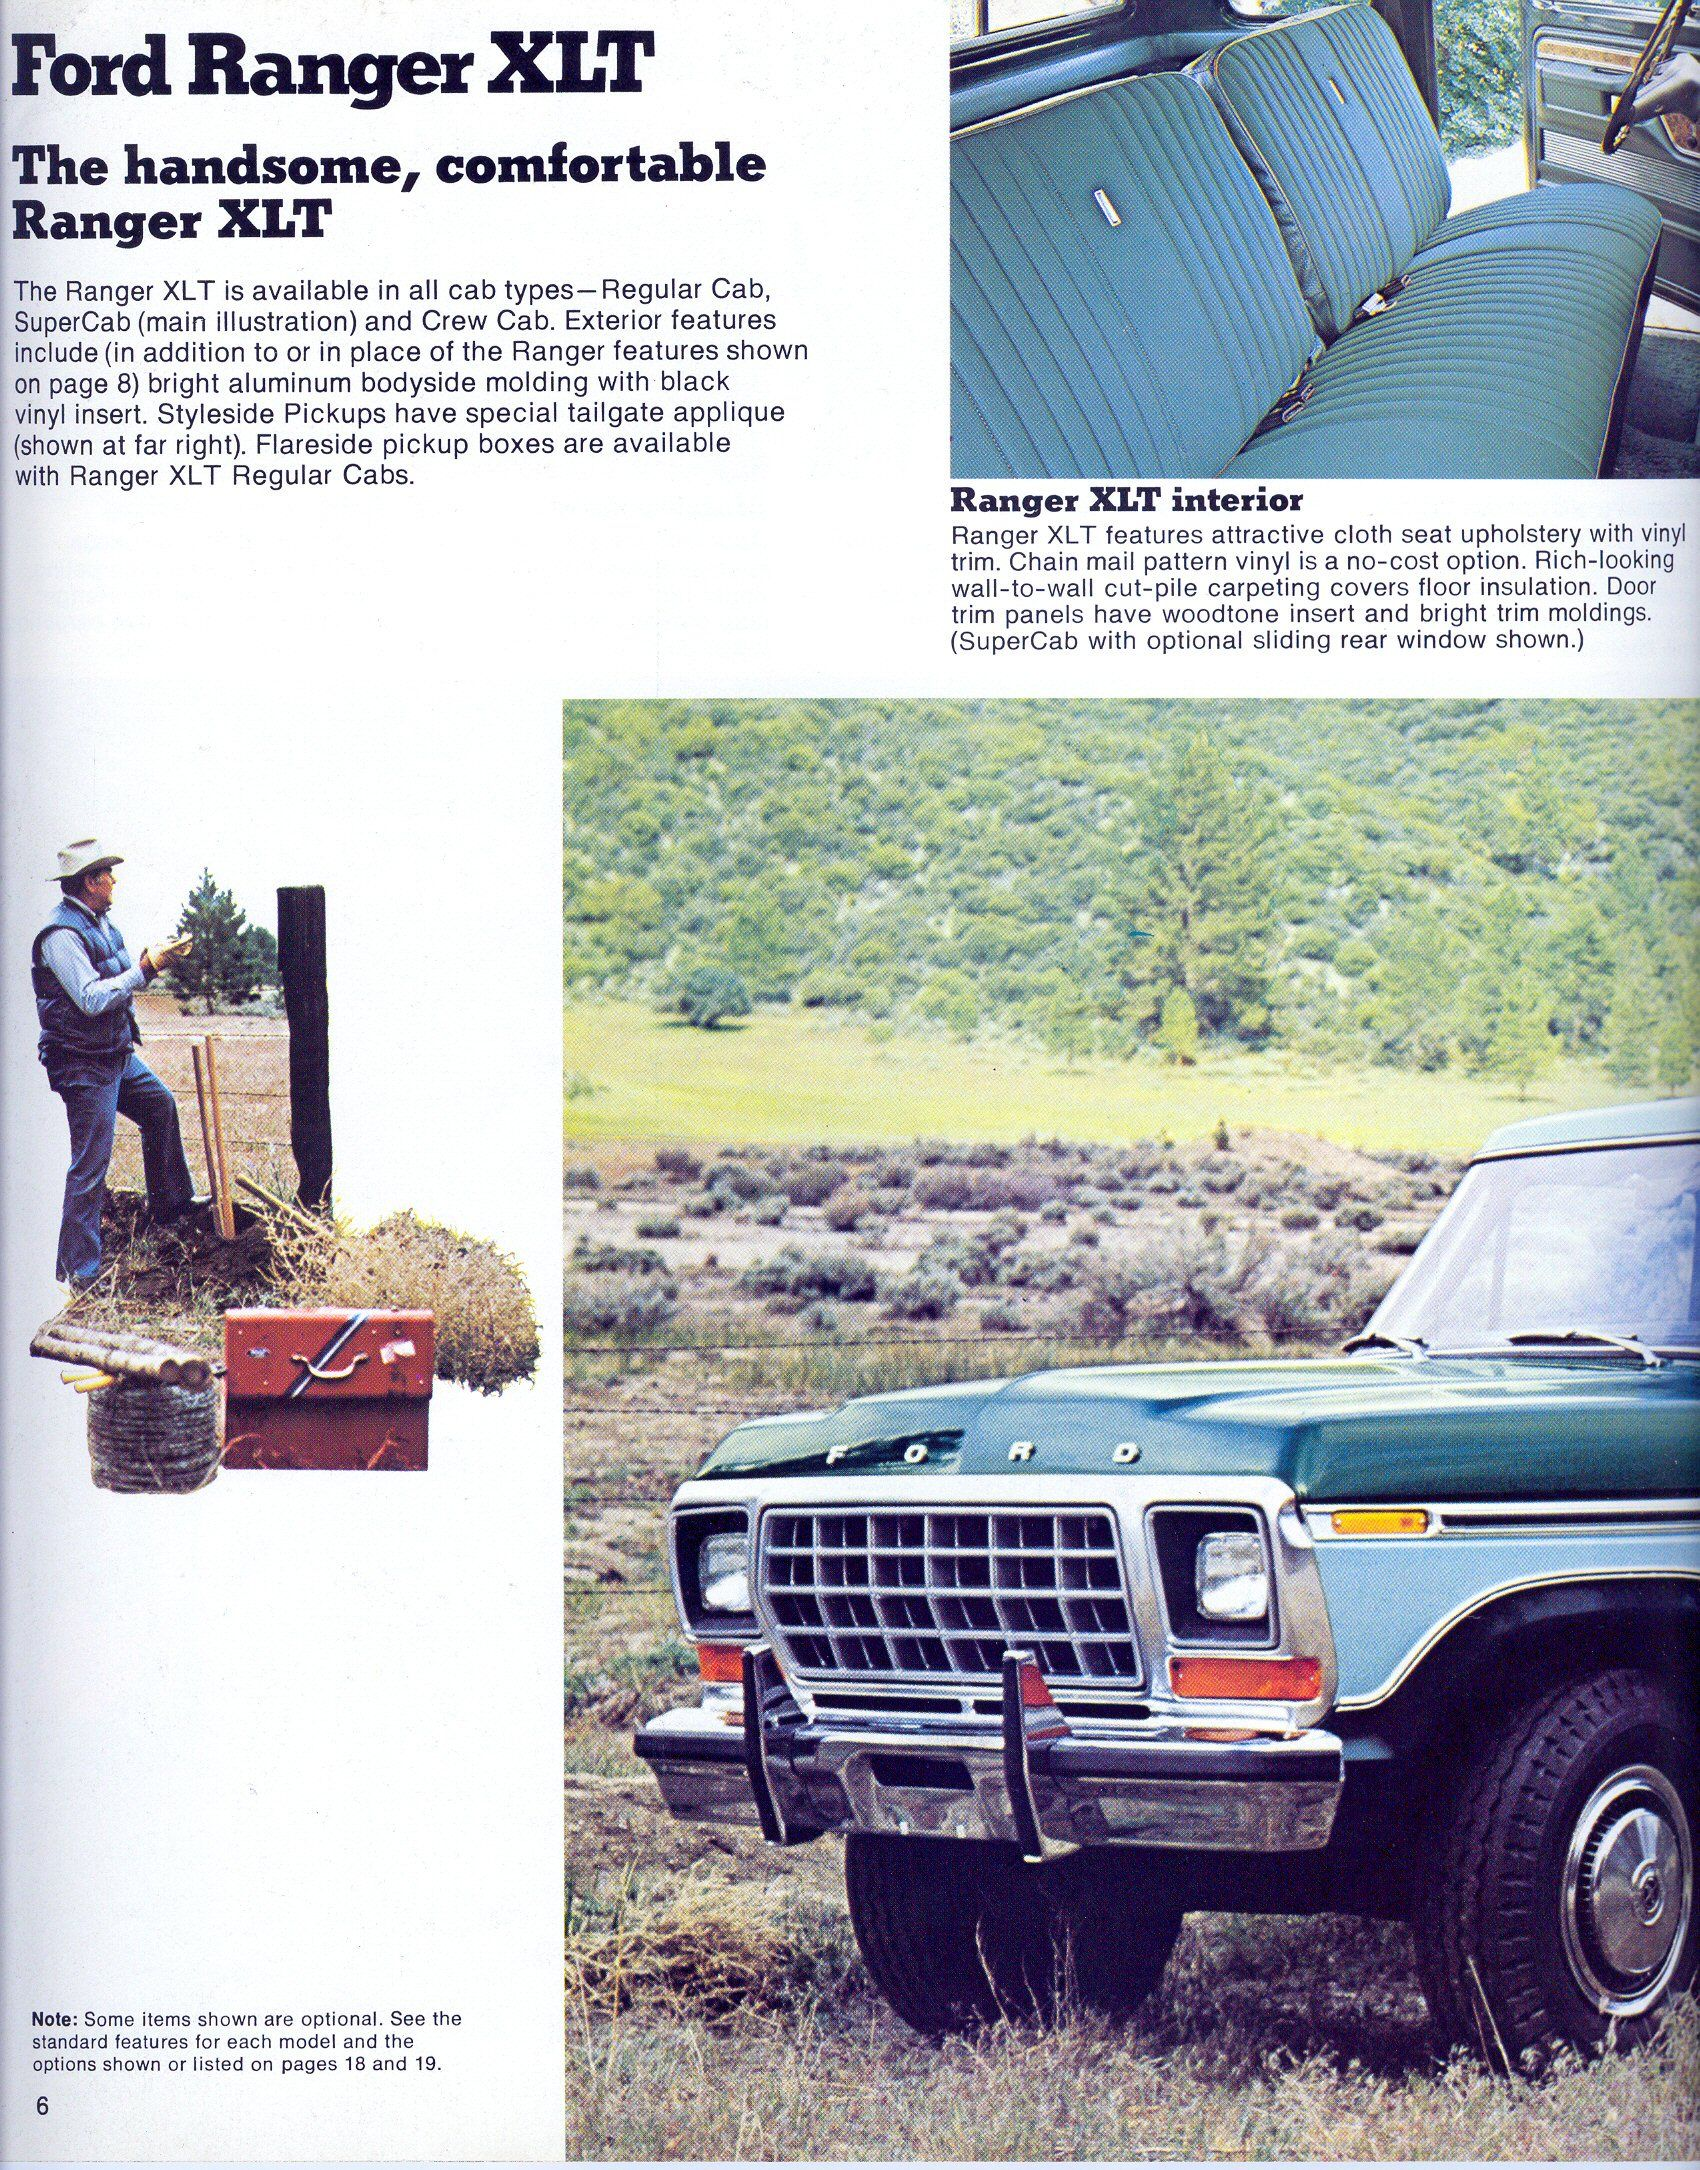 1979 Ford Truck Brochure 1979 Ford Truck Ford Pickup Trucks Classic Ford Trucks